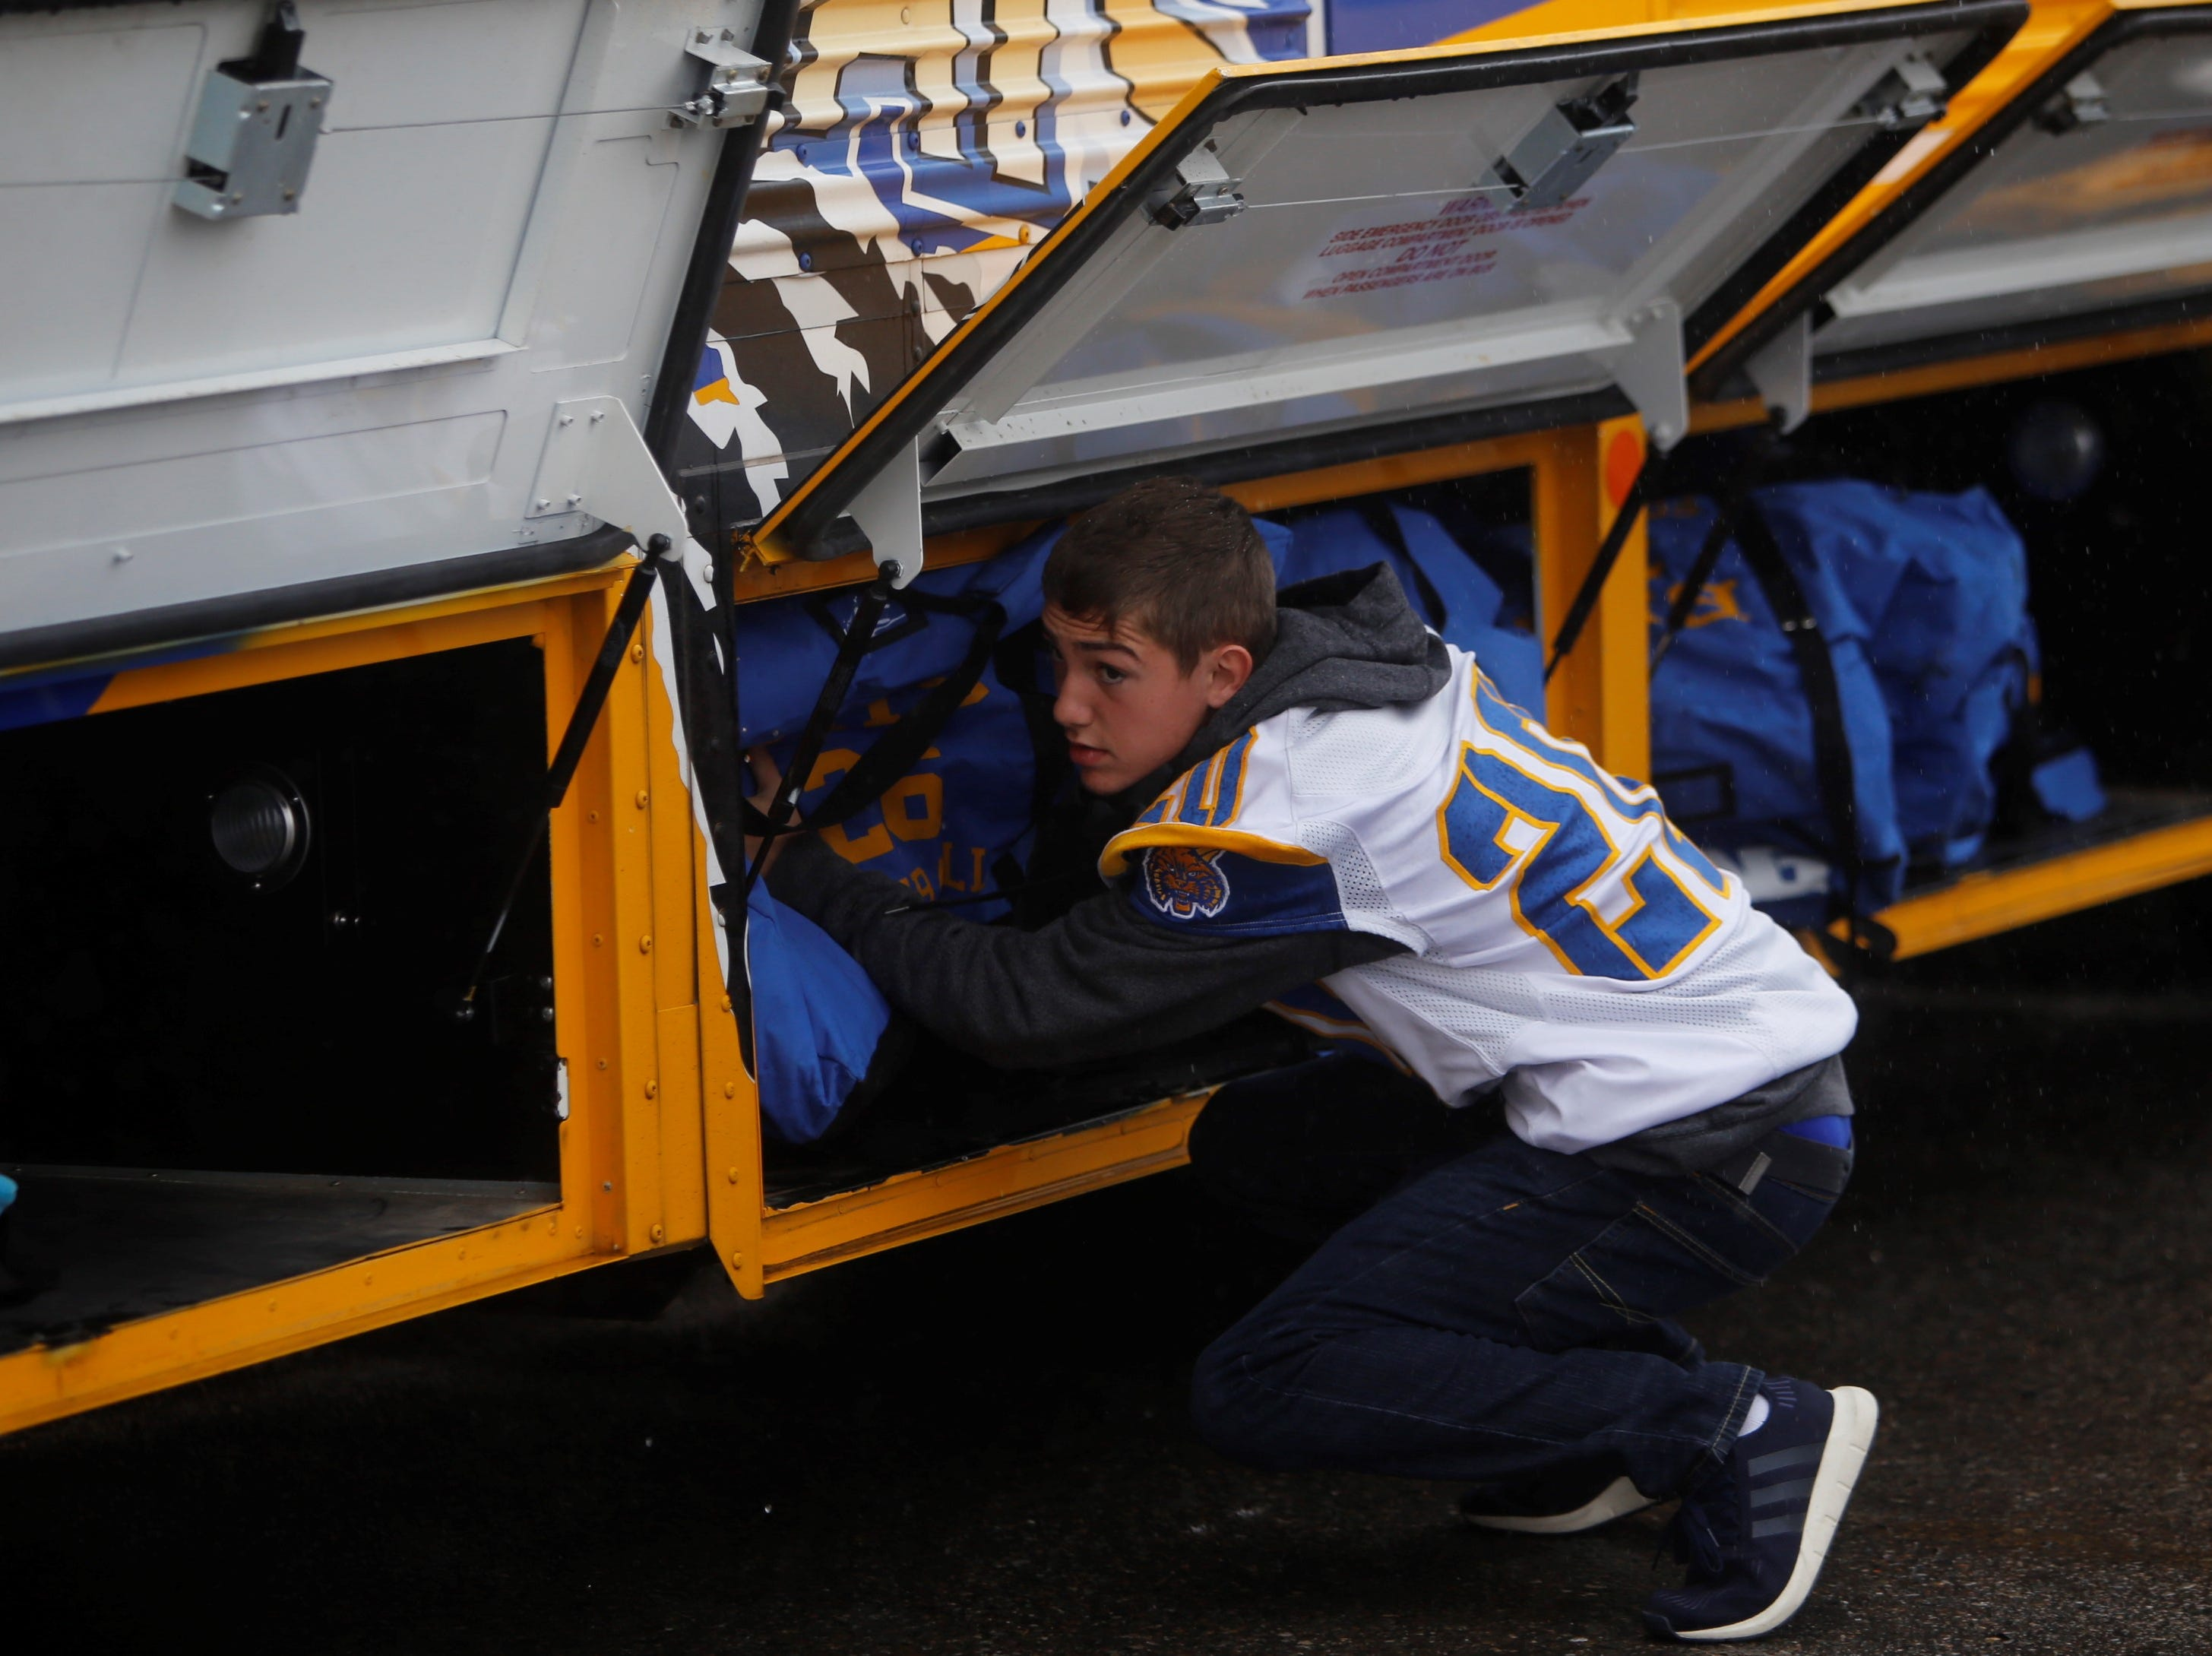 Bloomfield's Anthony Gonzales stashes his gear inside one of the side compartments on the team bus Friday at the Bobcat Stadium parking lot. BHS will play at Taos in Satuarday's 4A state football championship game.